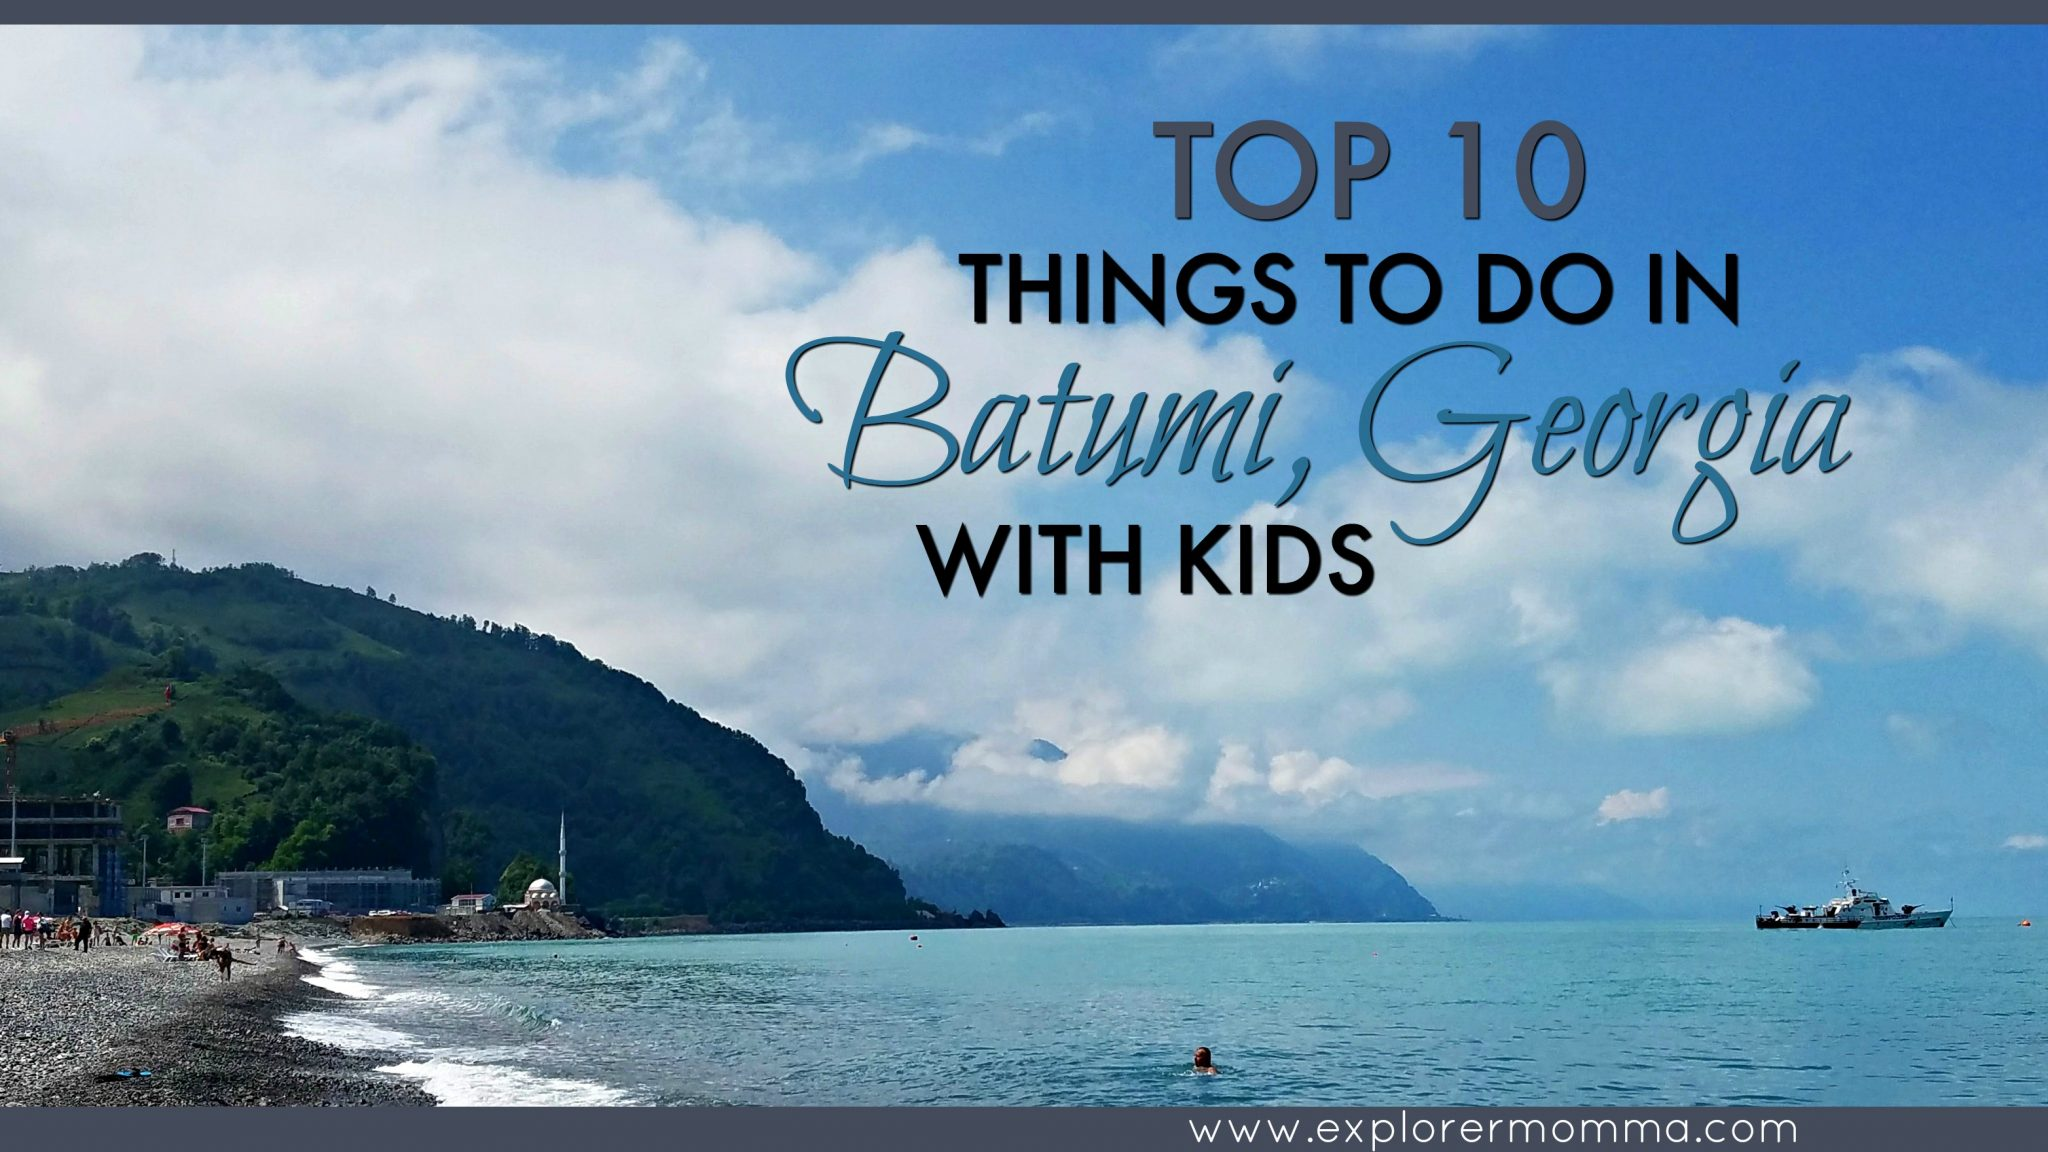 Batumi with kids feature